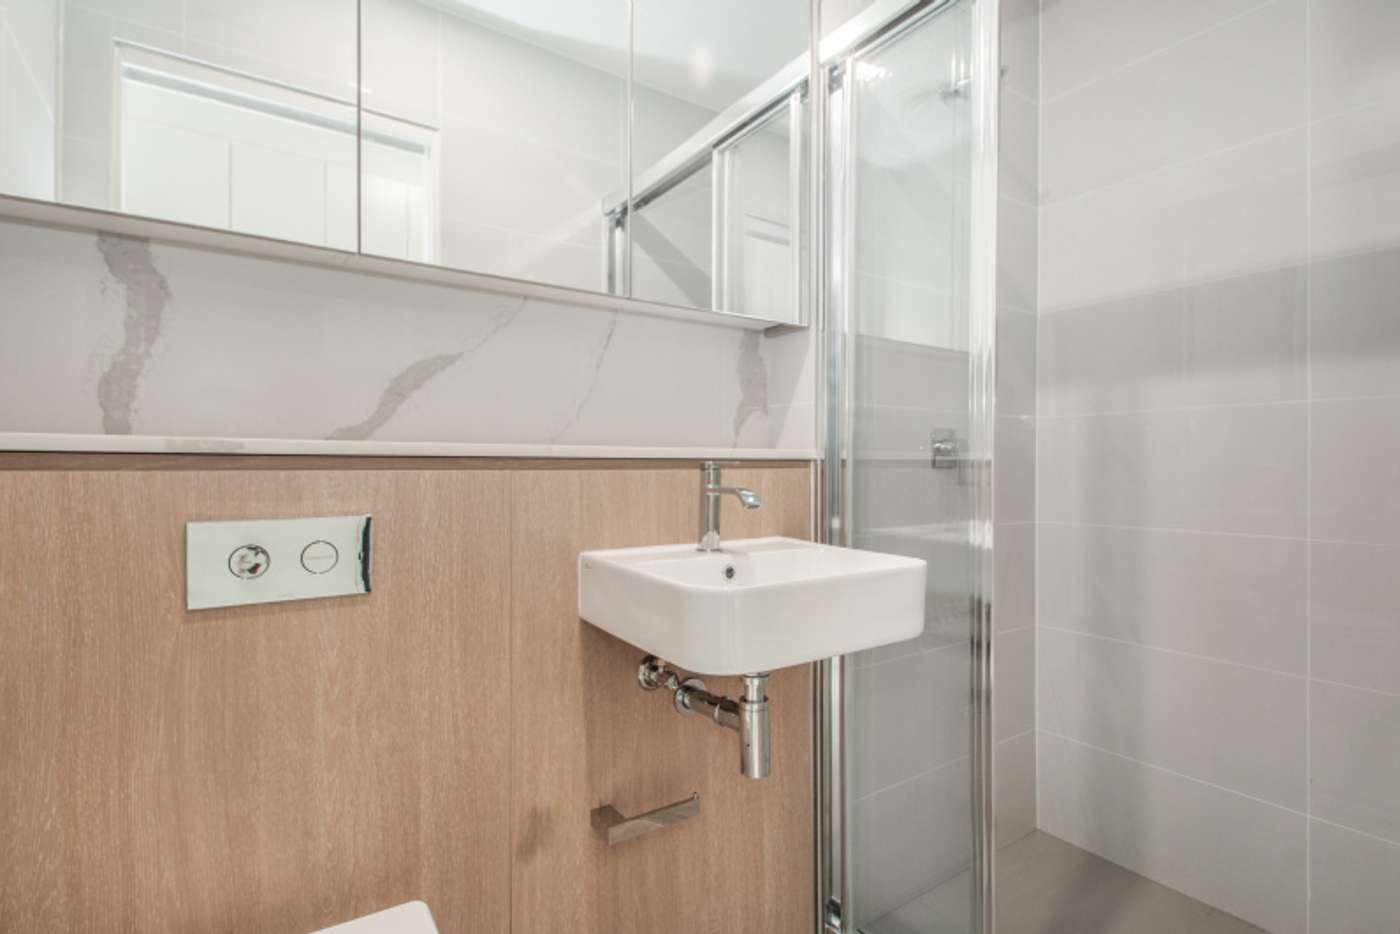 Seventh view of Homely studio listing, 27 Madoline Street, Keiraville NSW 2500